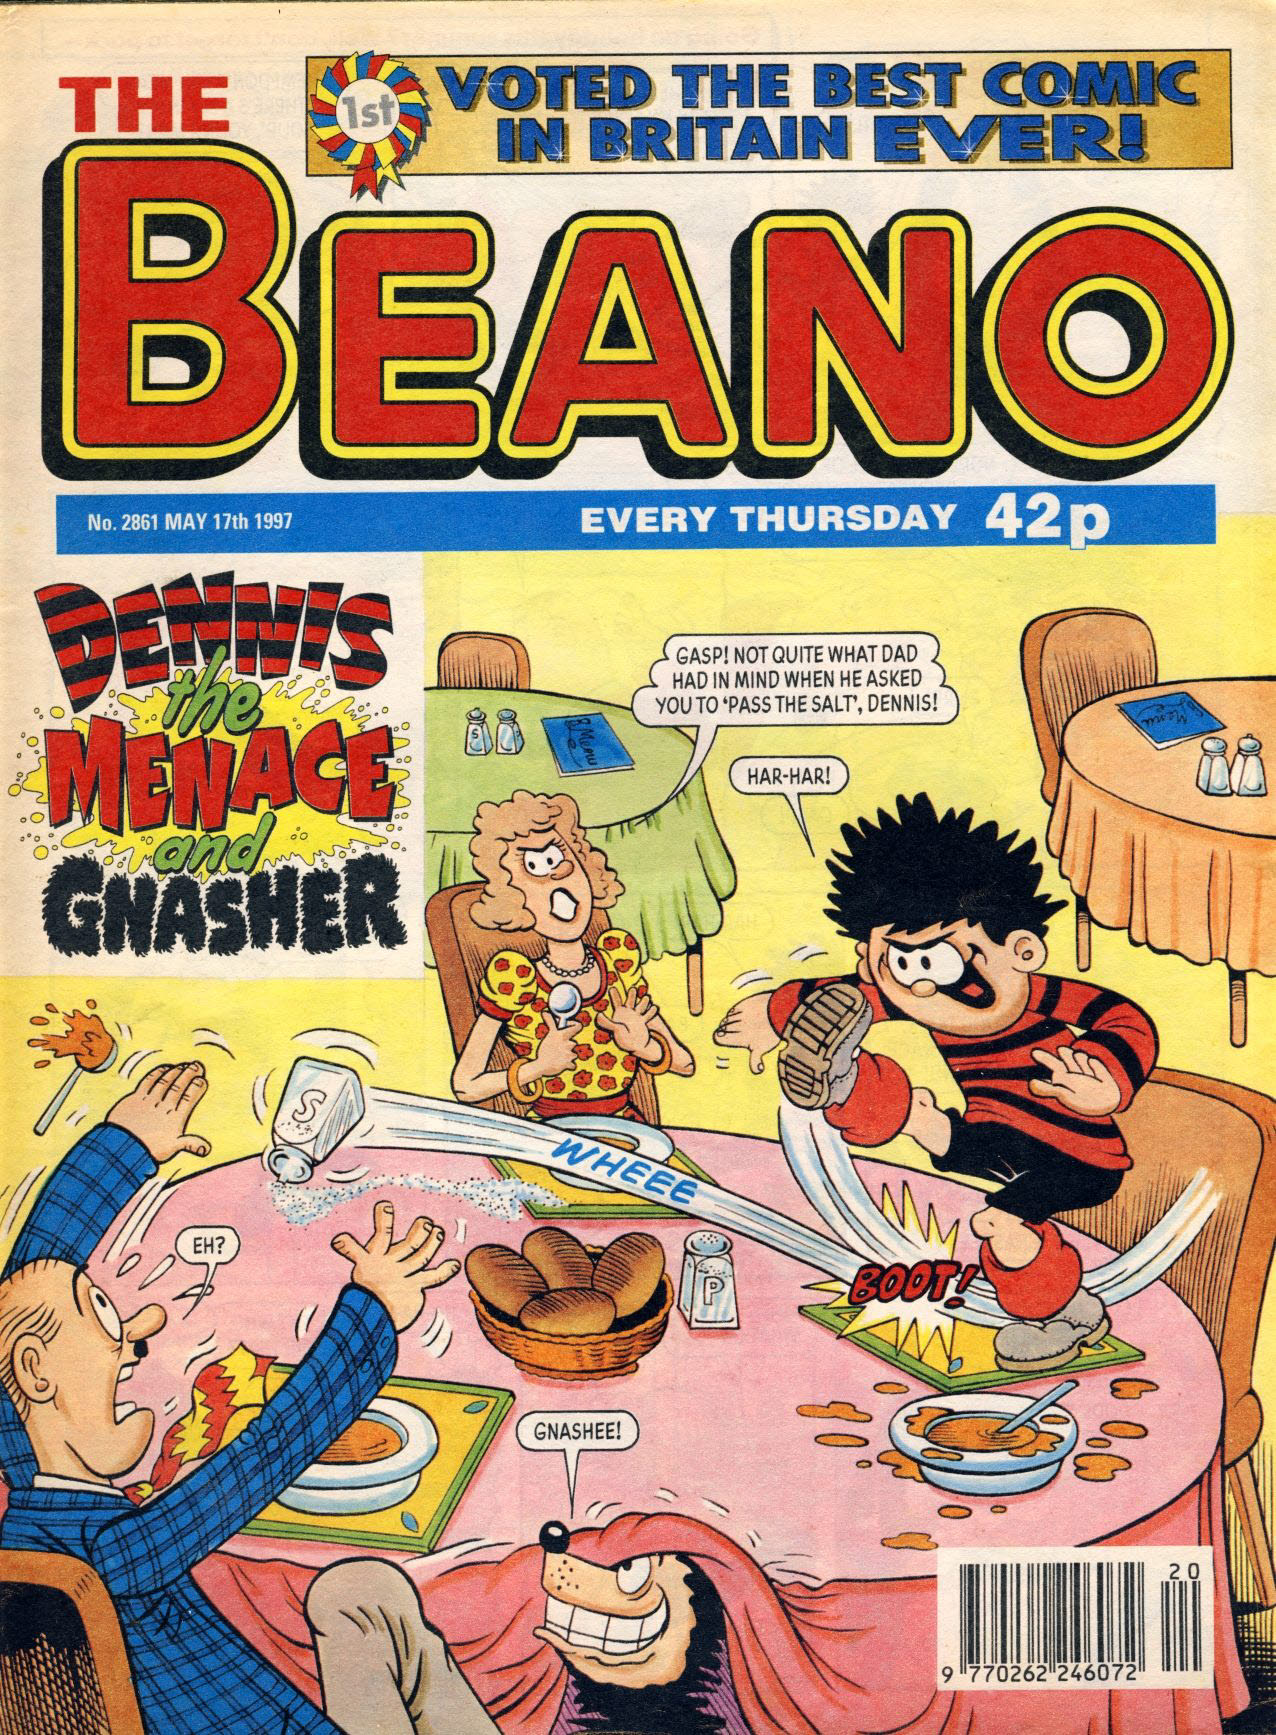 1997 May 17th BEANO vintage comic Good Birthday Present Gift Christmas Anniversary ref187 A vintage comic in good read condition. Please see larger photo and full description for details.